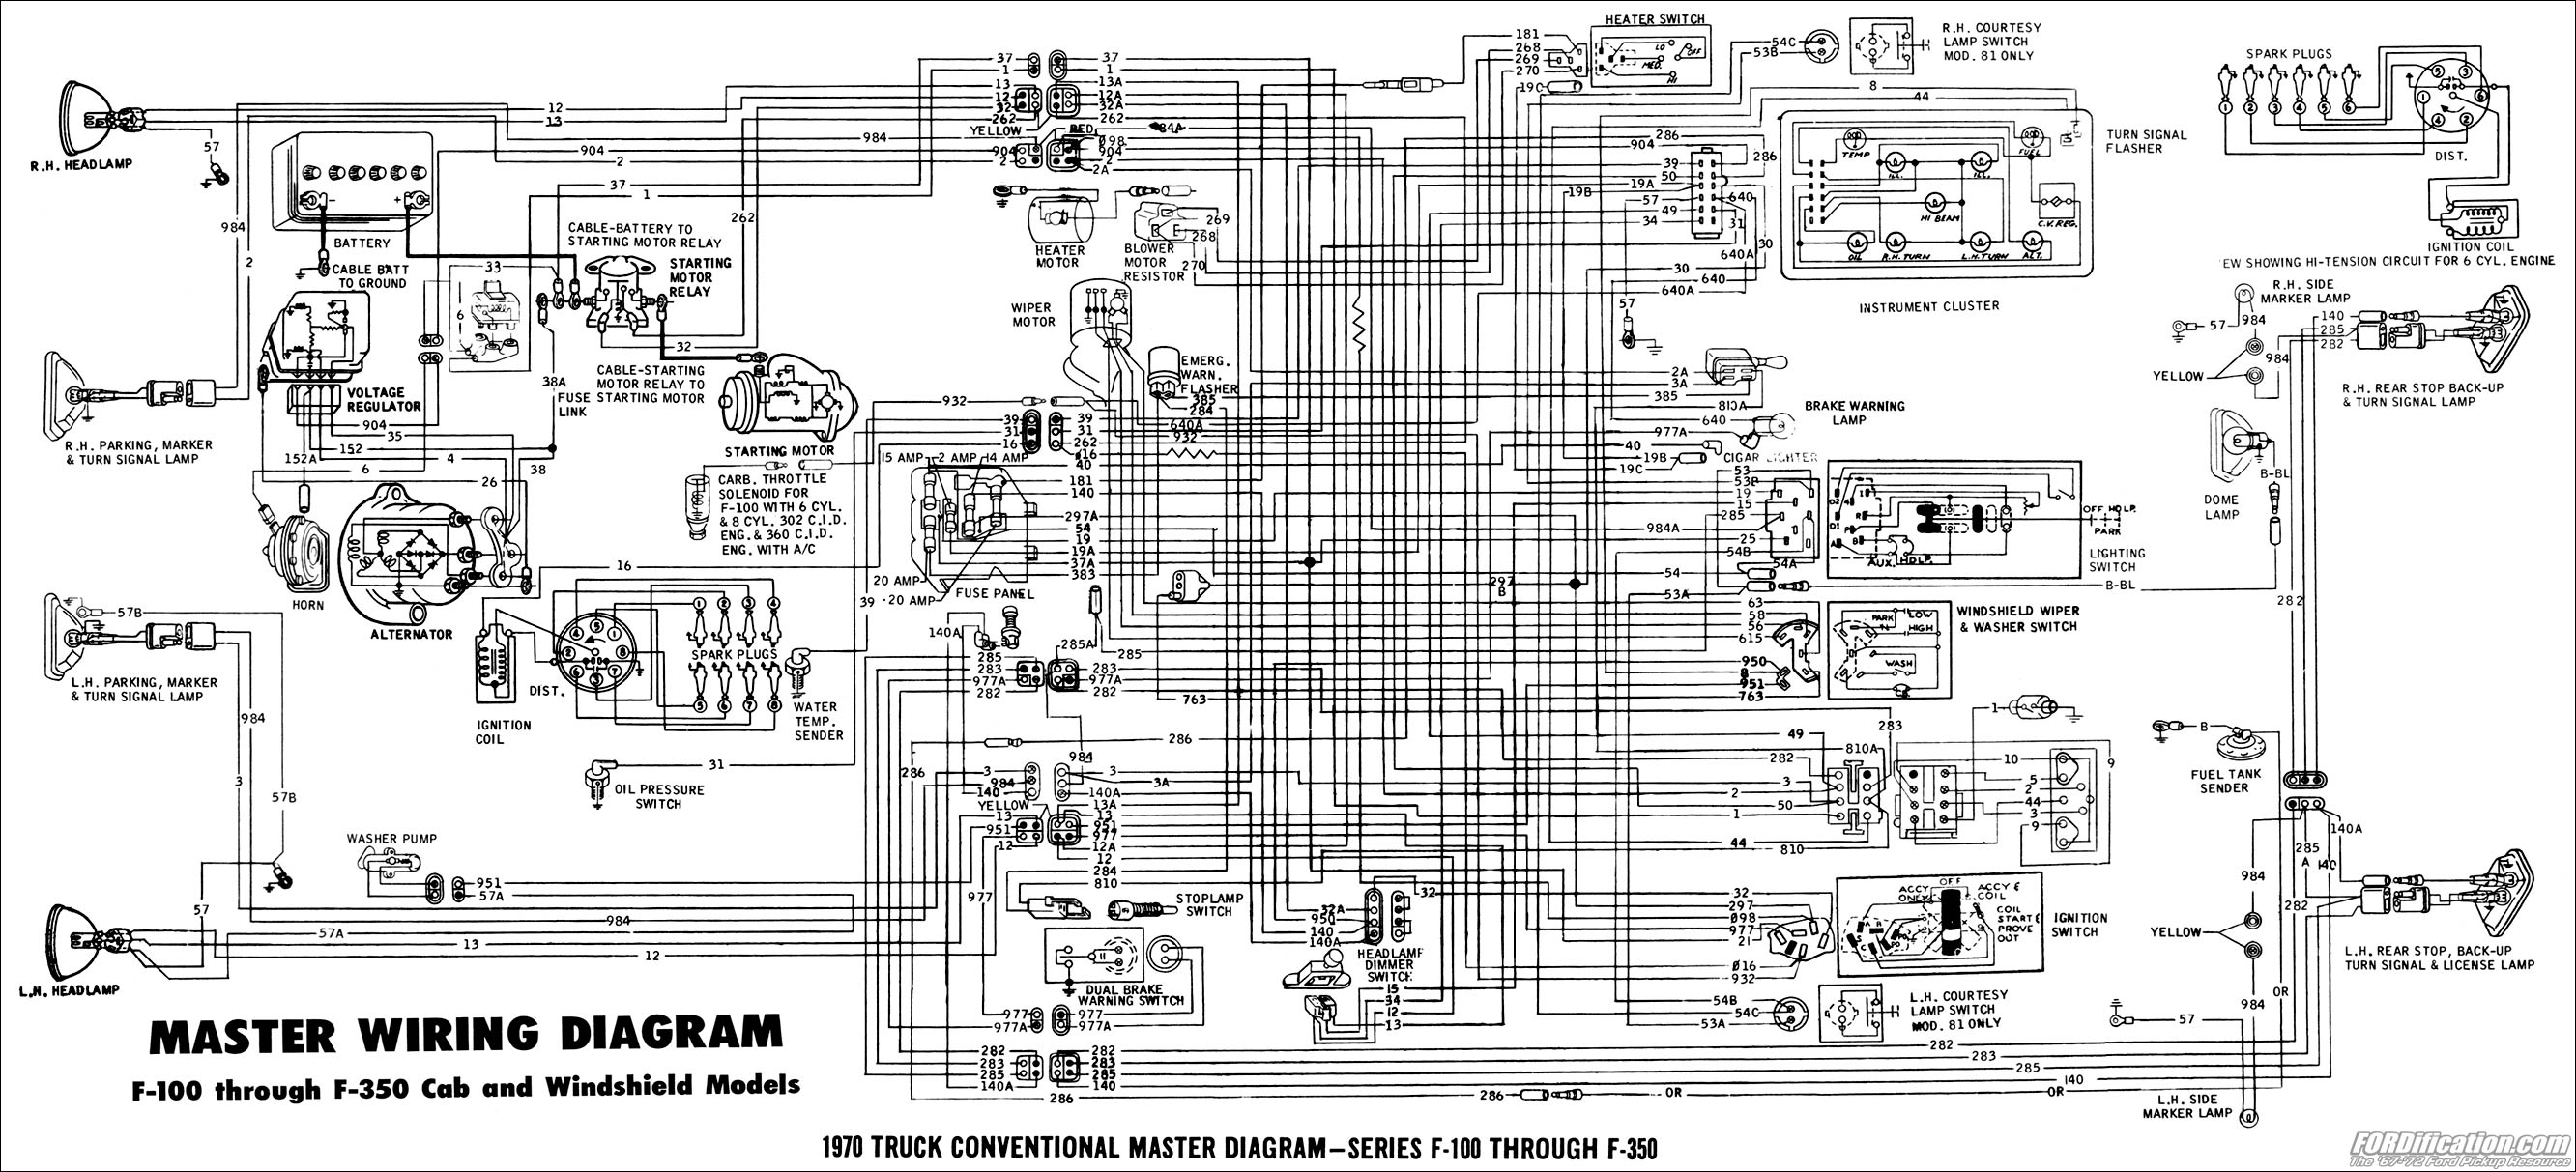 87 toyota pickup fuel pump wiring diagram best wiring library rh 105 princestaash org